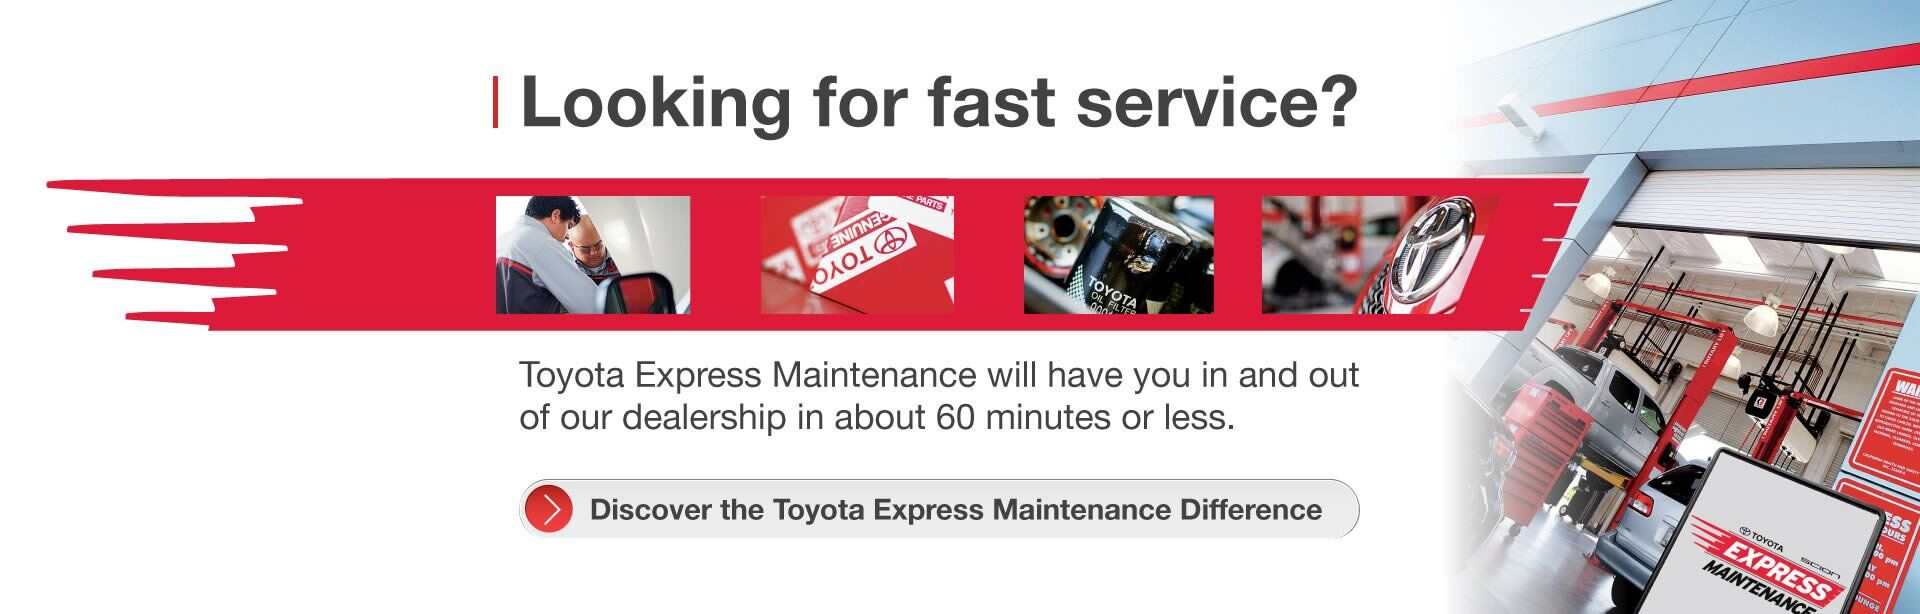 Toyota Express Maintenance at Spitzer Toyota Monroeville in Monroeville, PA